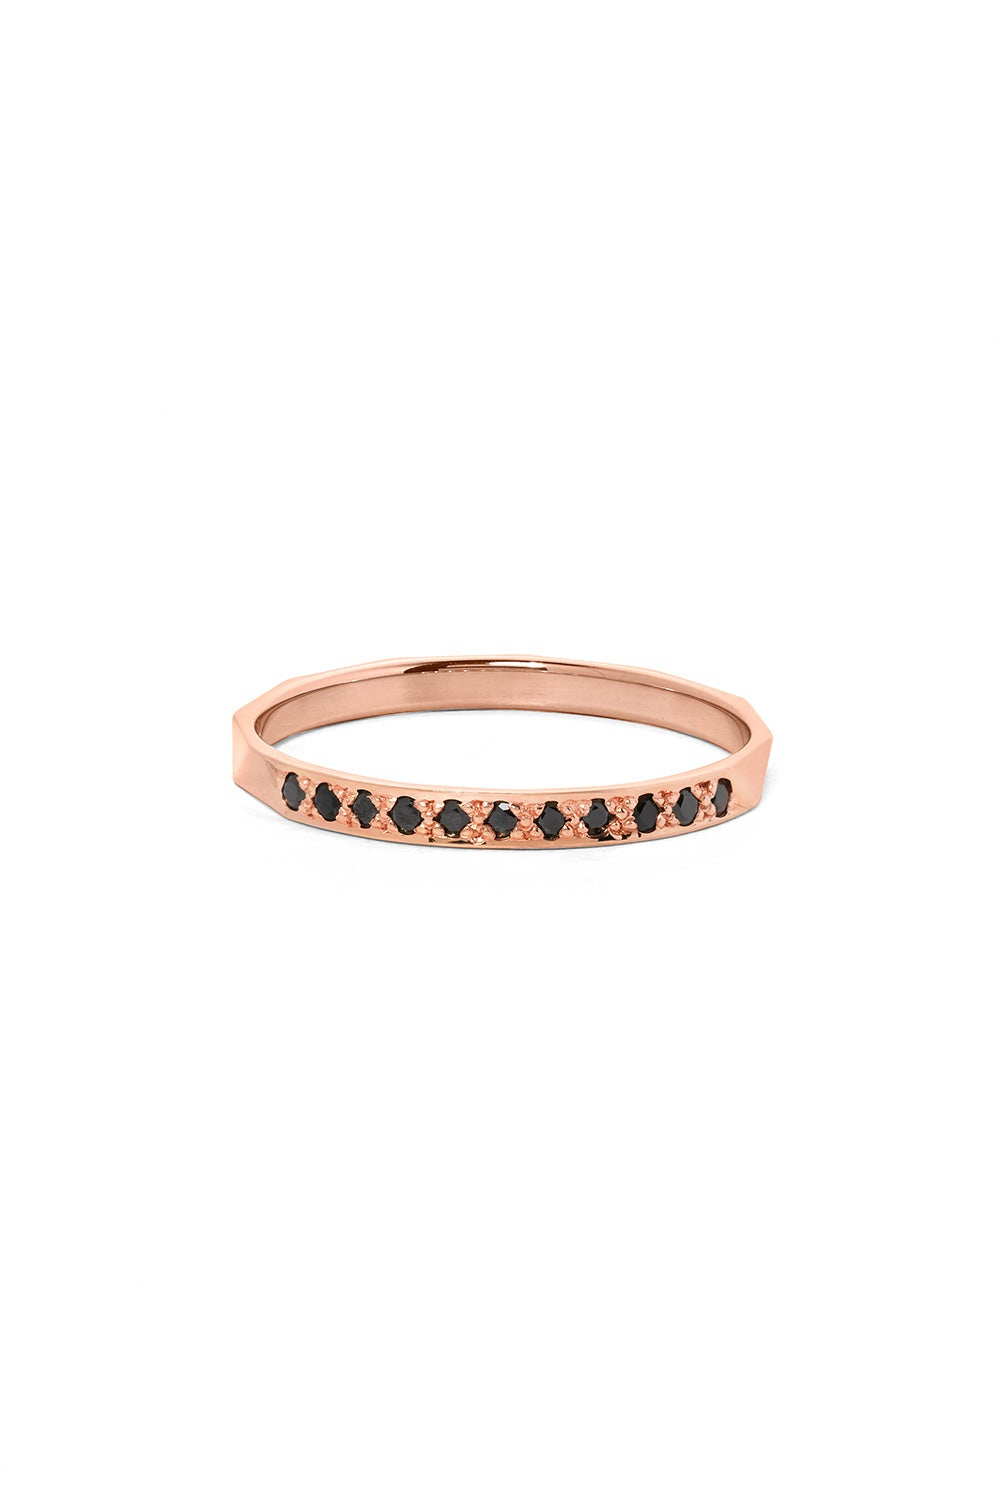 Blessing Band, Rose Gold, Black Diamond